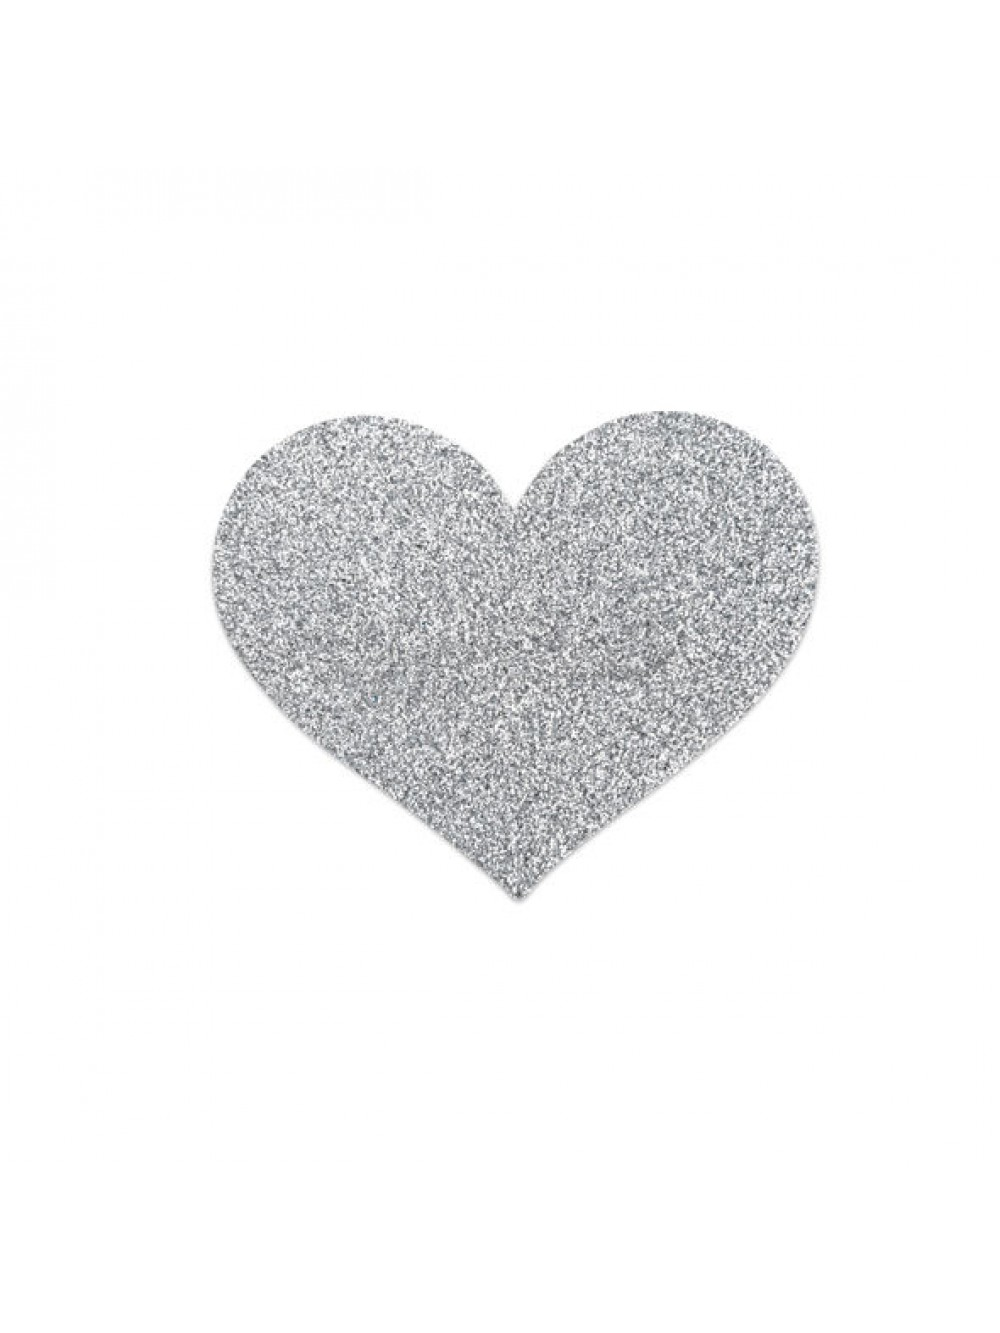 BIJOUX PEZONERAS FLASH HEART SILVER 8437008002767